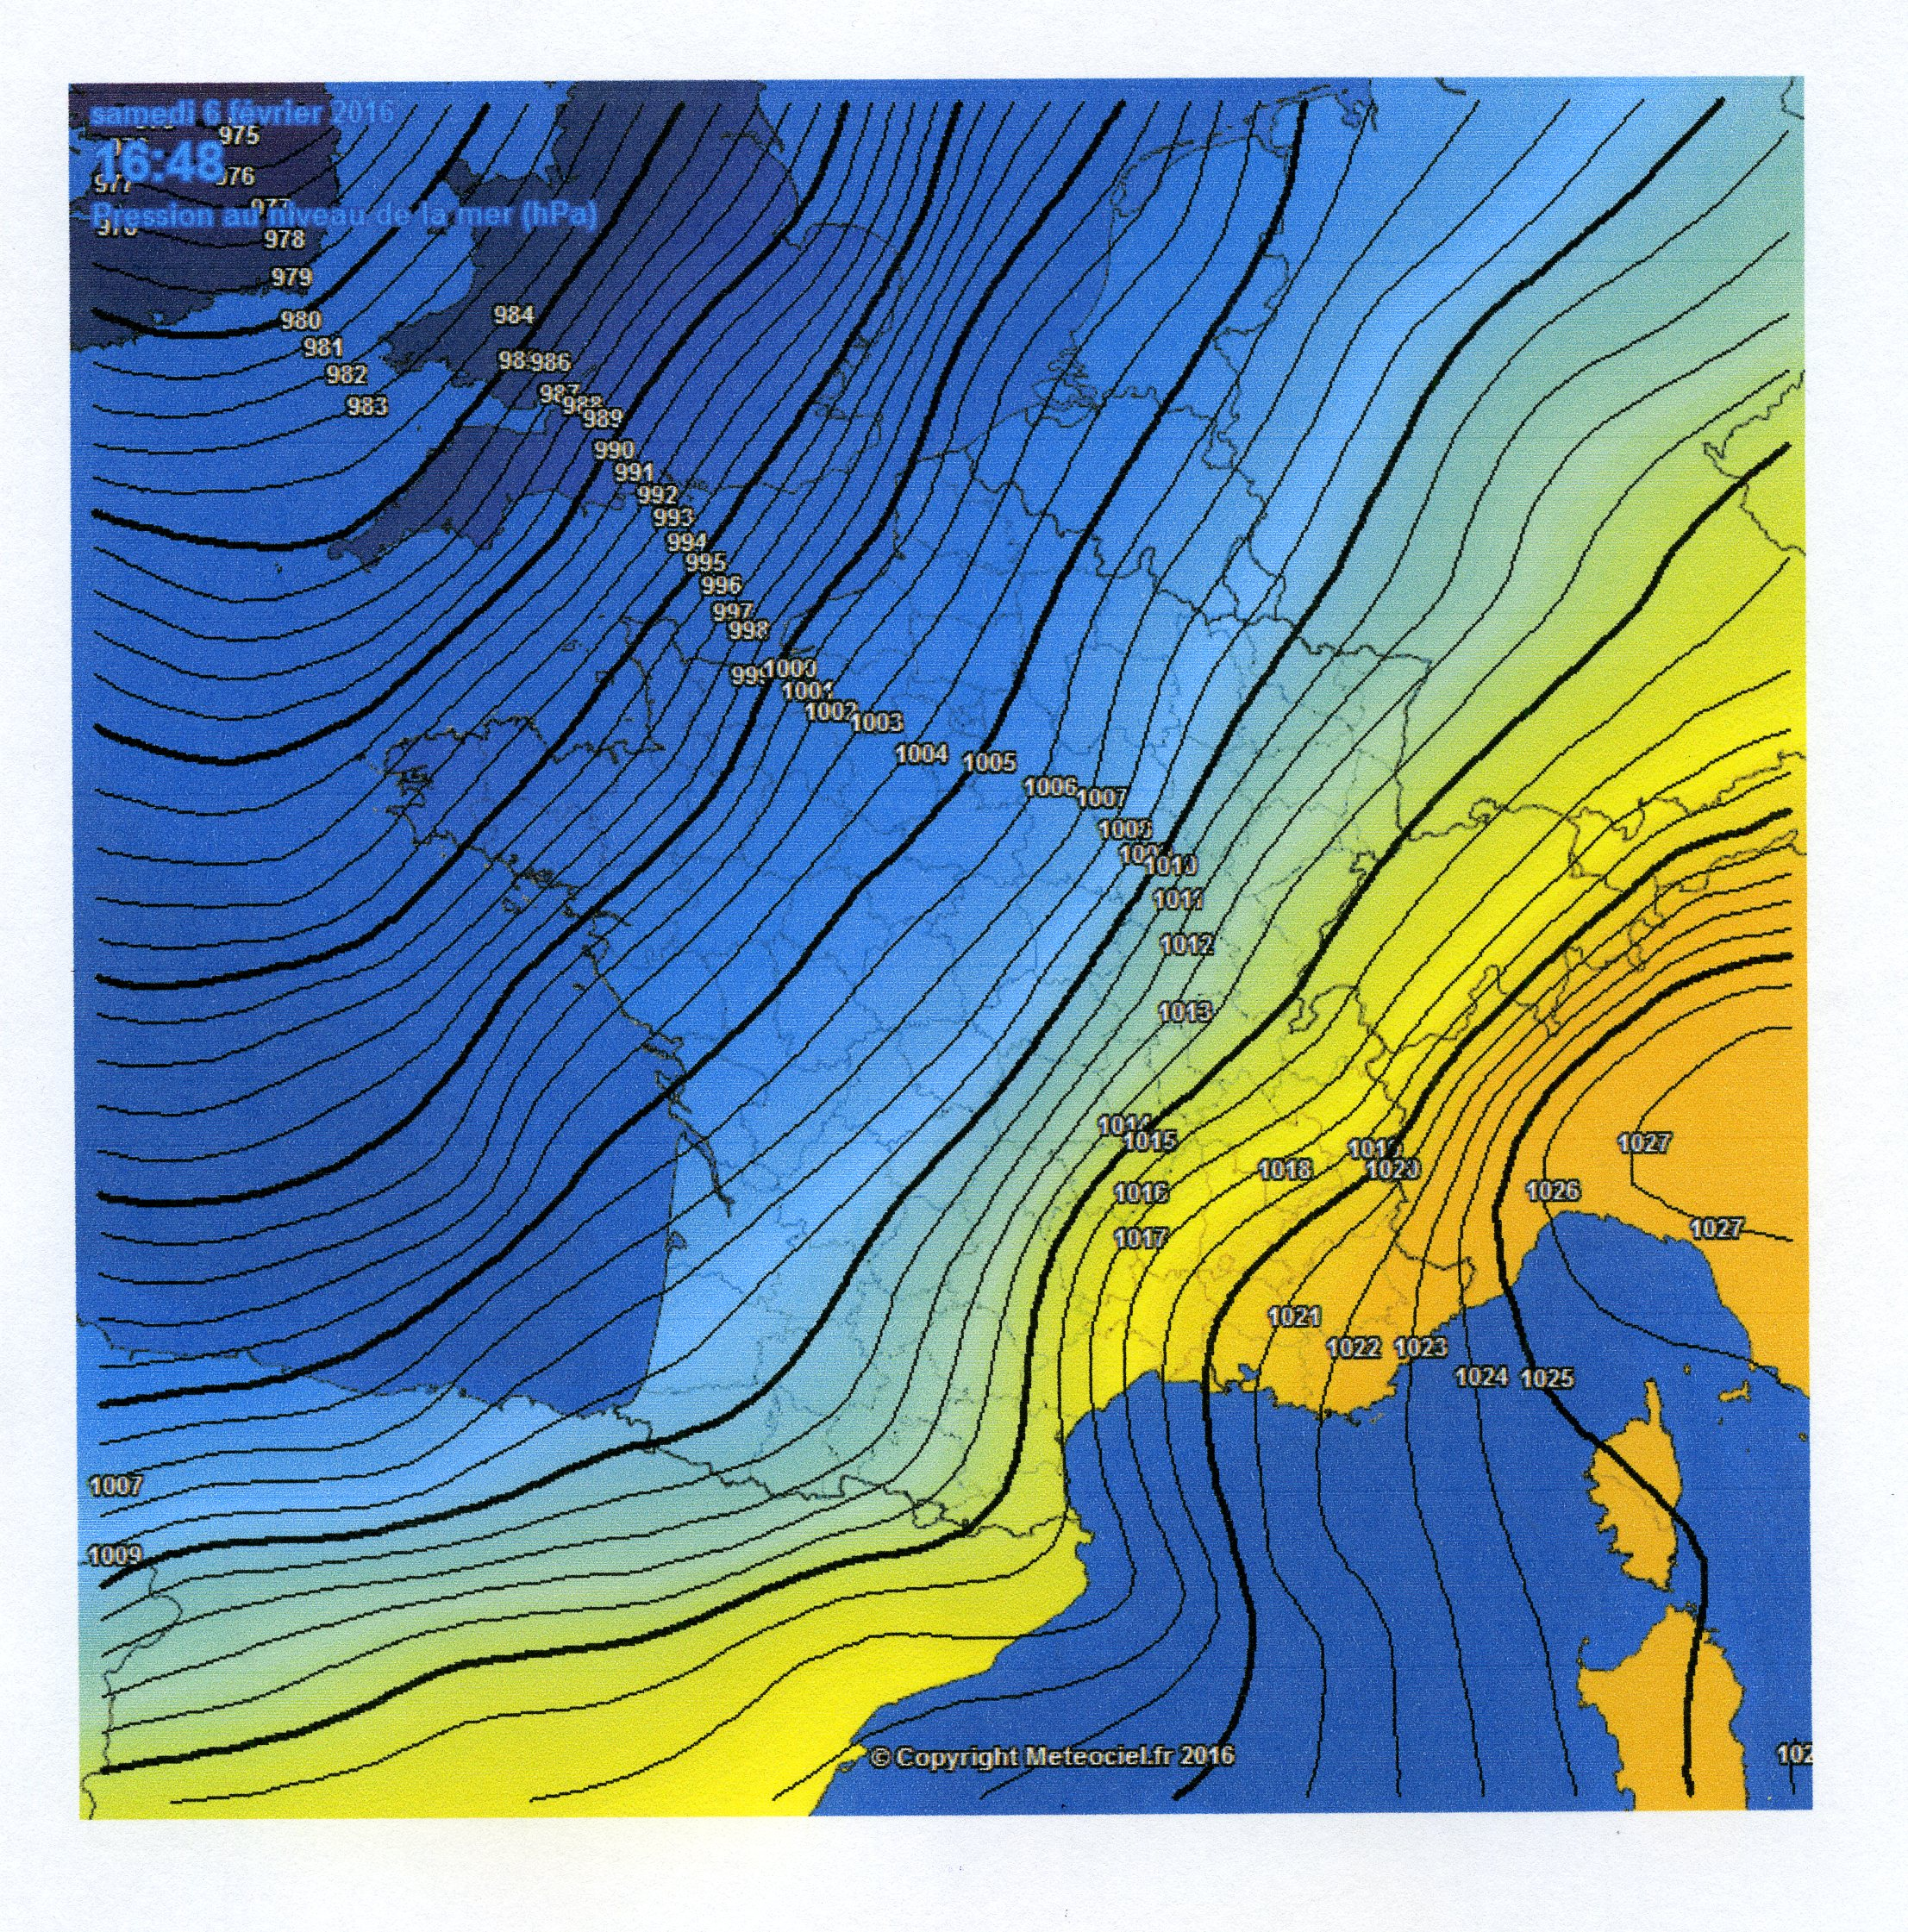 Synop 06 02 2016 tempete 005